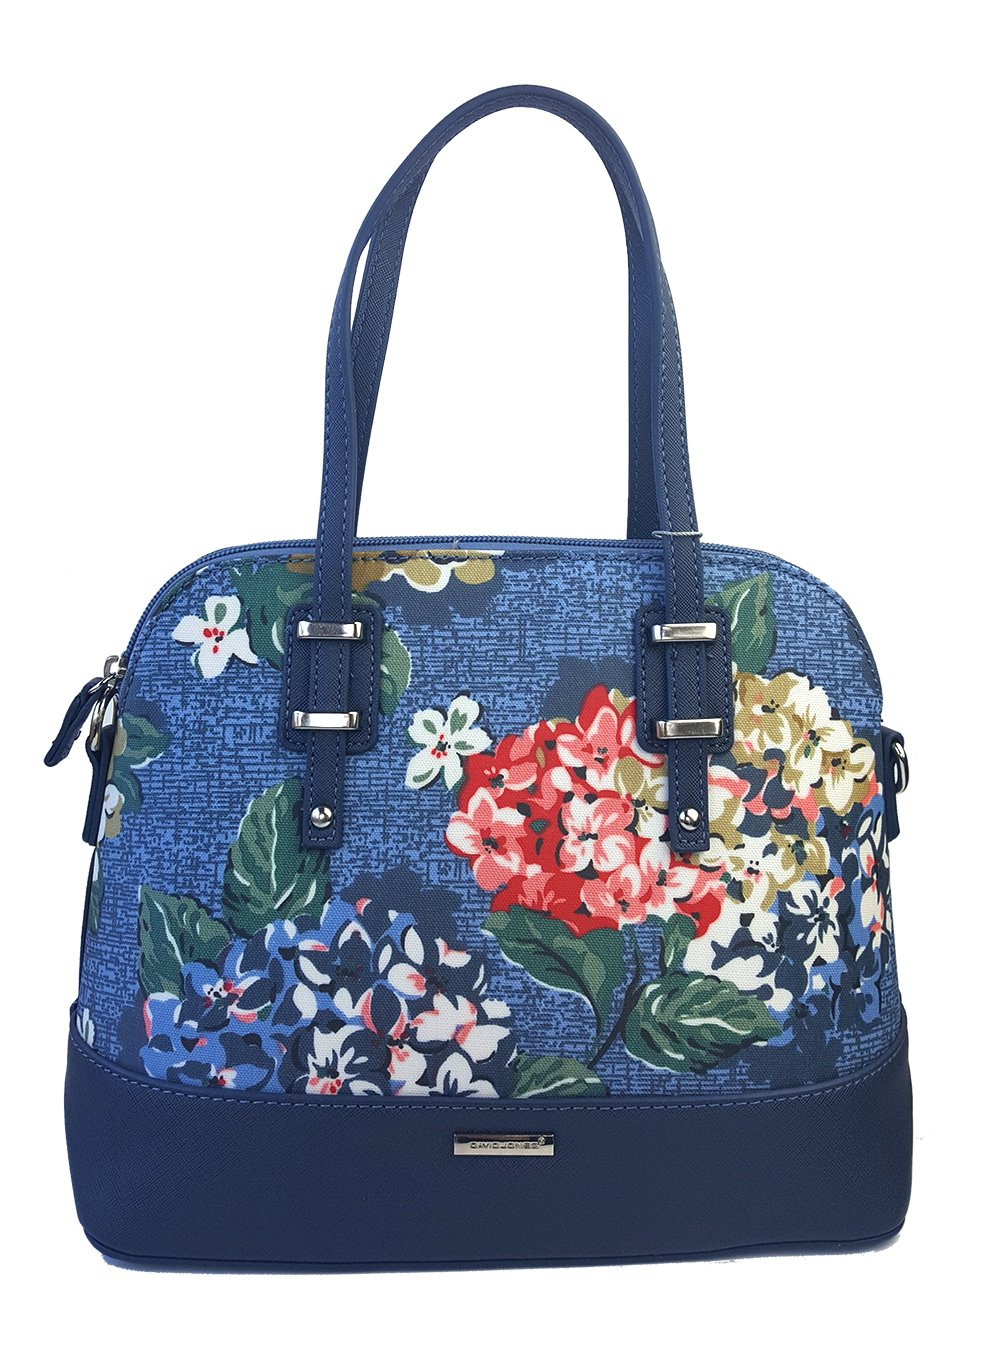 Small Handbag - Floral PU Leather Crossbody bag for Women with Zipper, Pockets and Shoulder Strap(Blue)